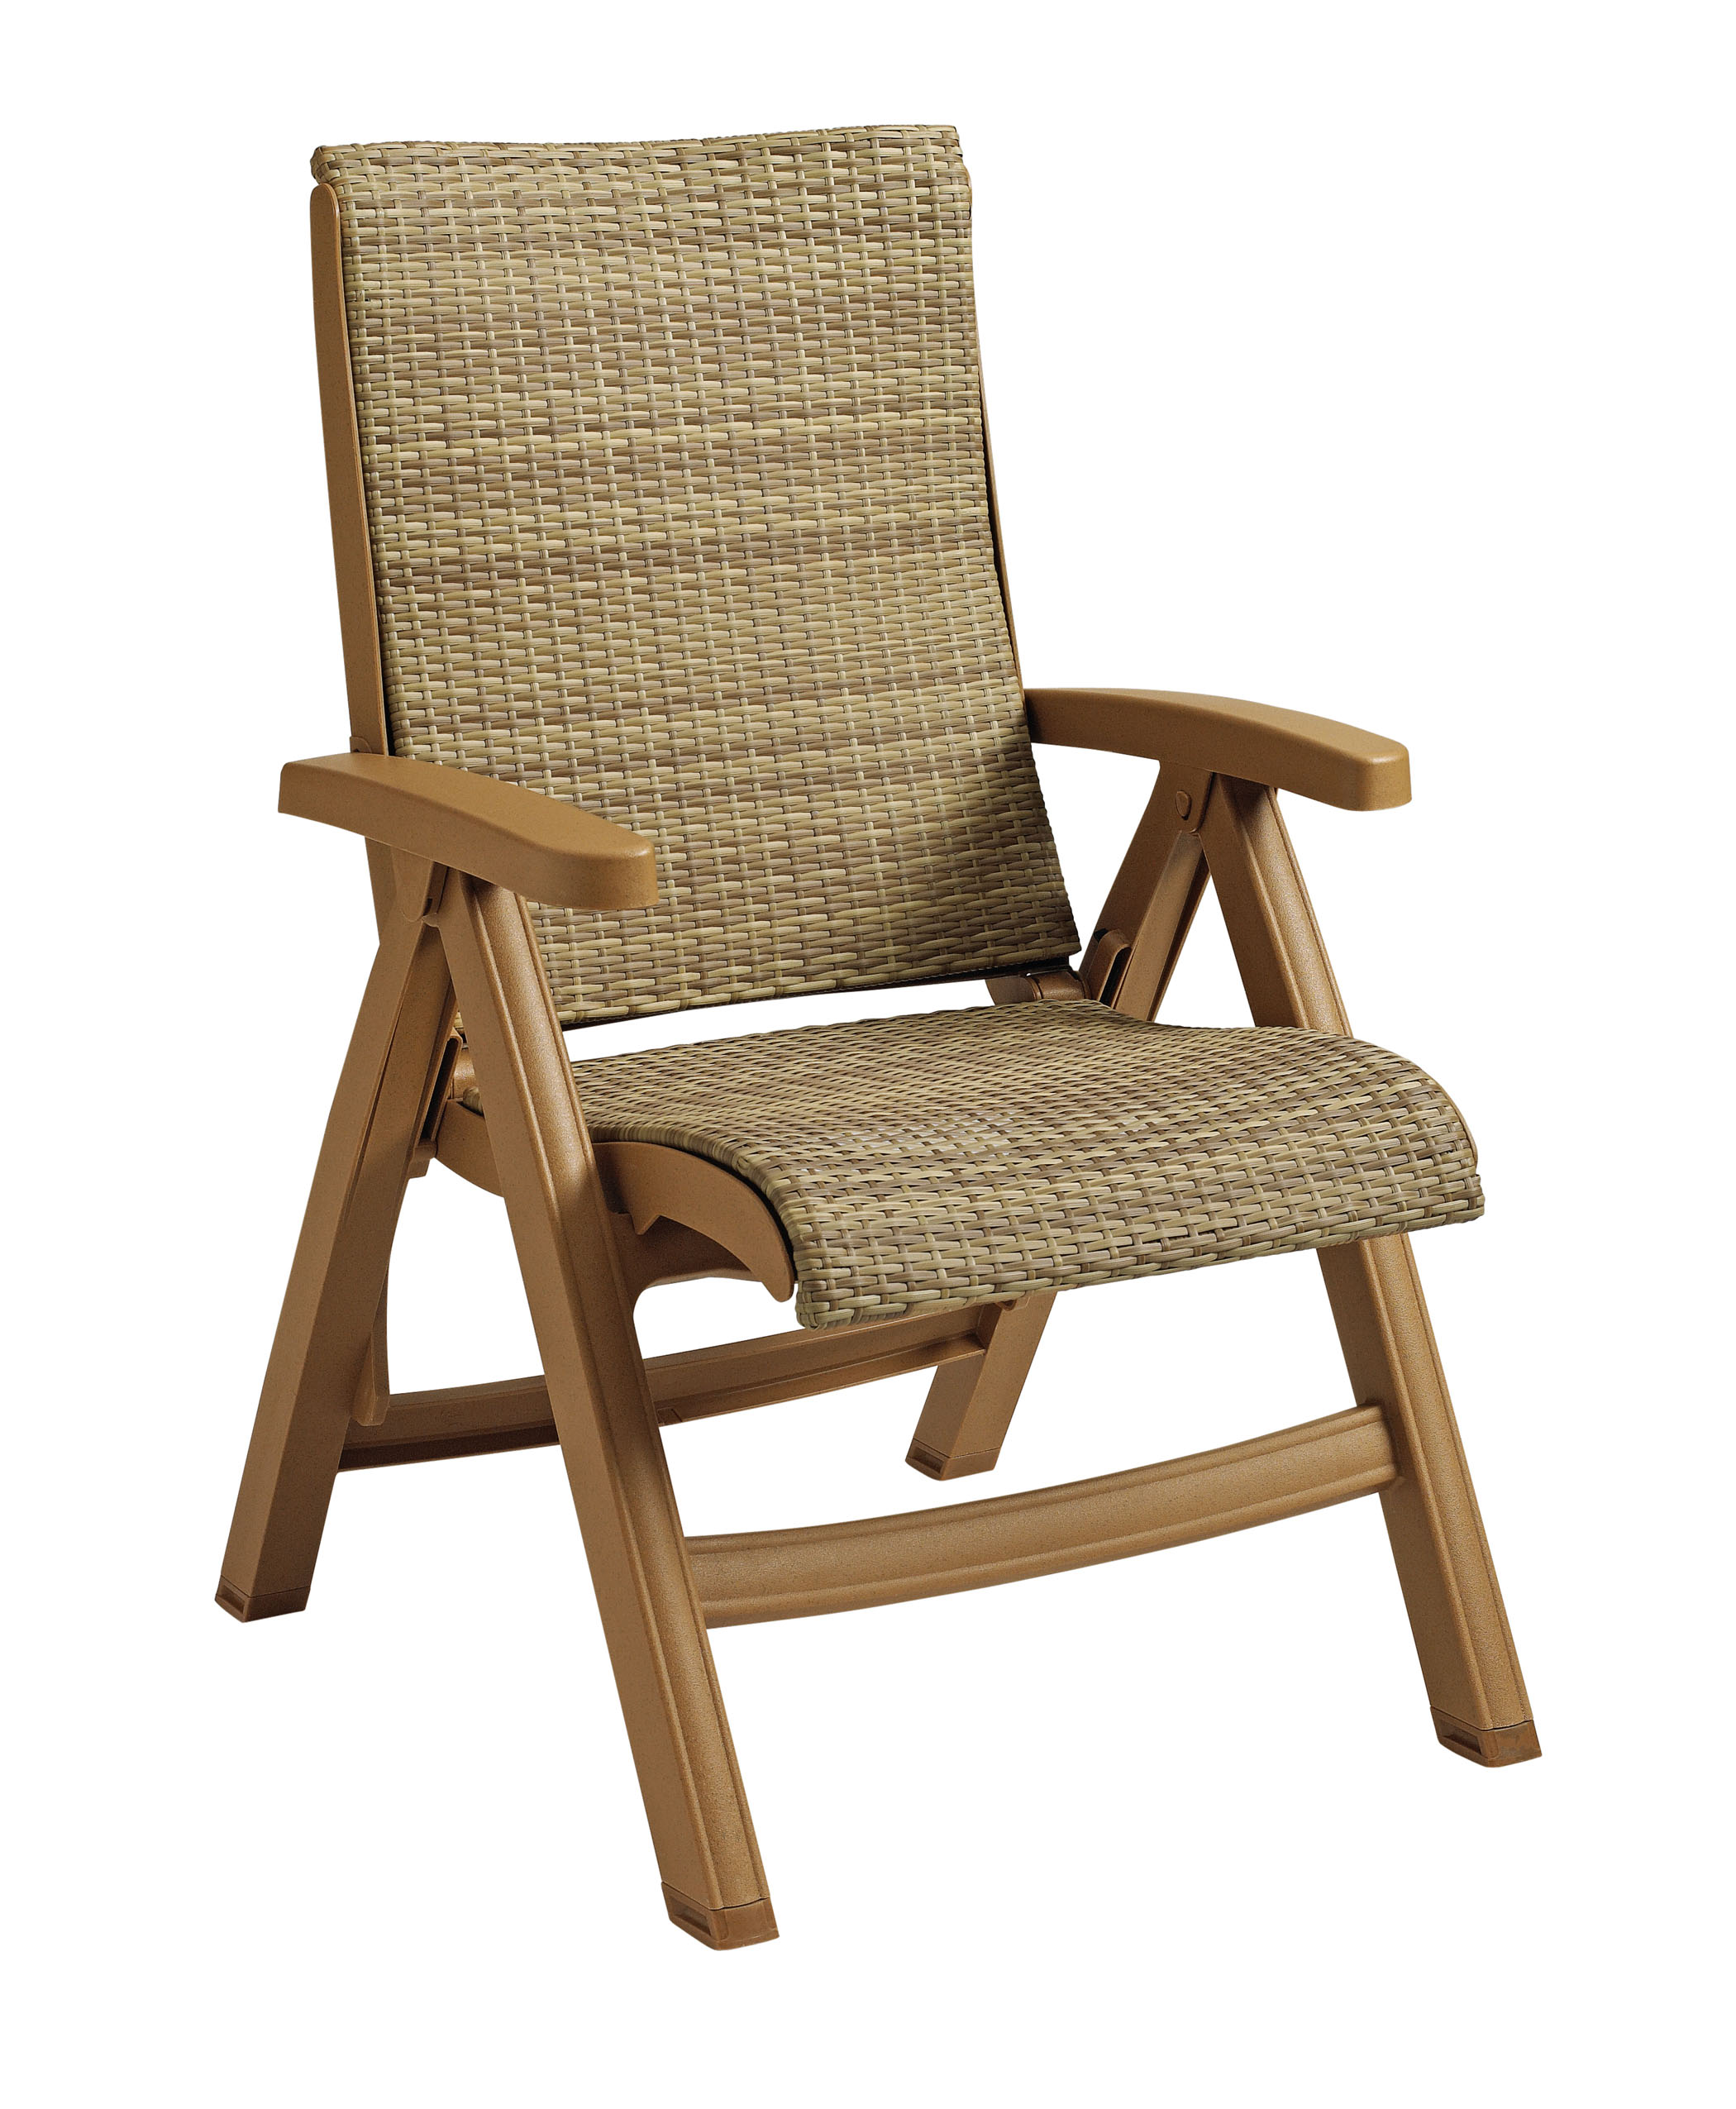 patio folding chairs hickory chair vanity stool java all weather wicker resin et andt